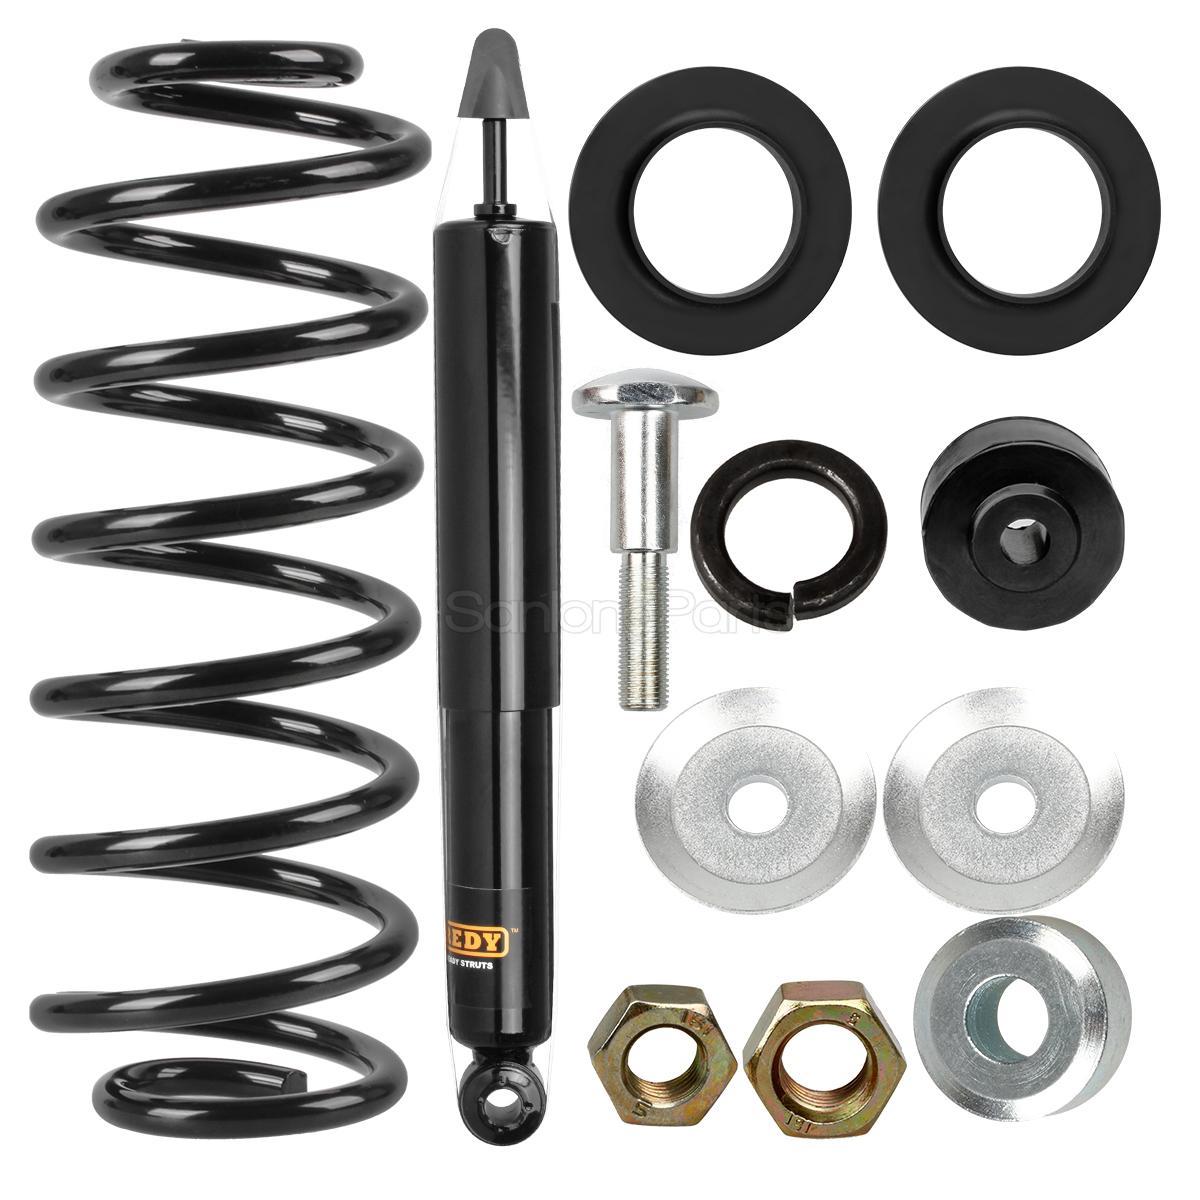 Service Manual Coil Spring Conversion Instructions Grand Marquis Town Coil Spring Conversion